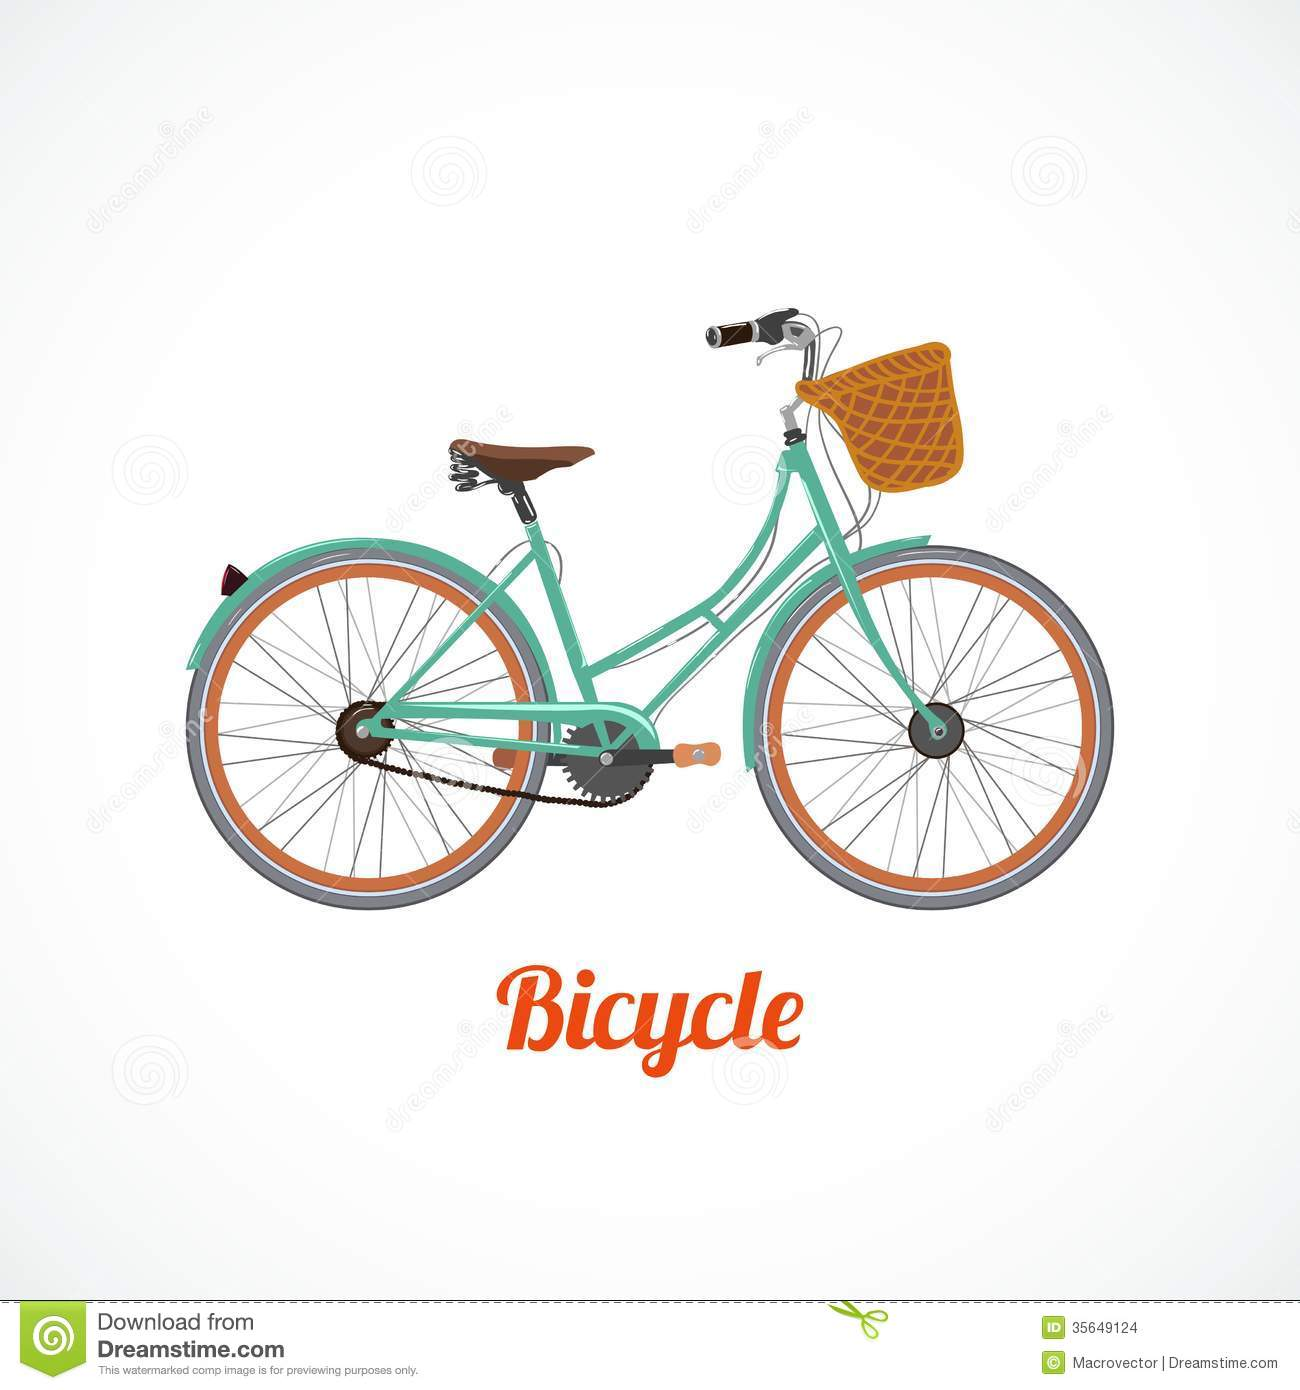 Bicycle illustration retro - photo#4